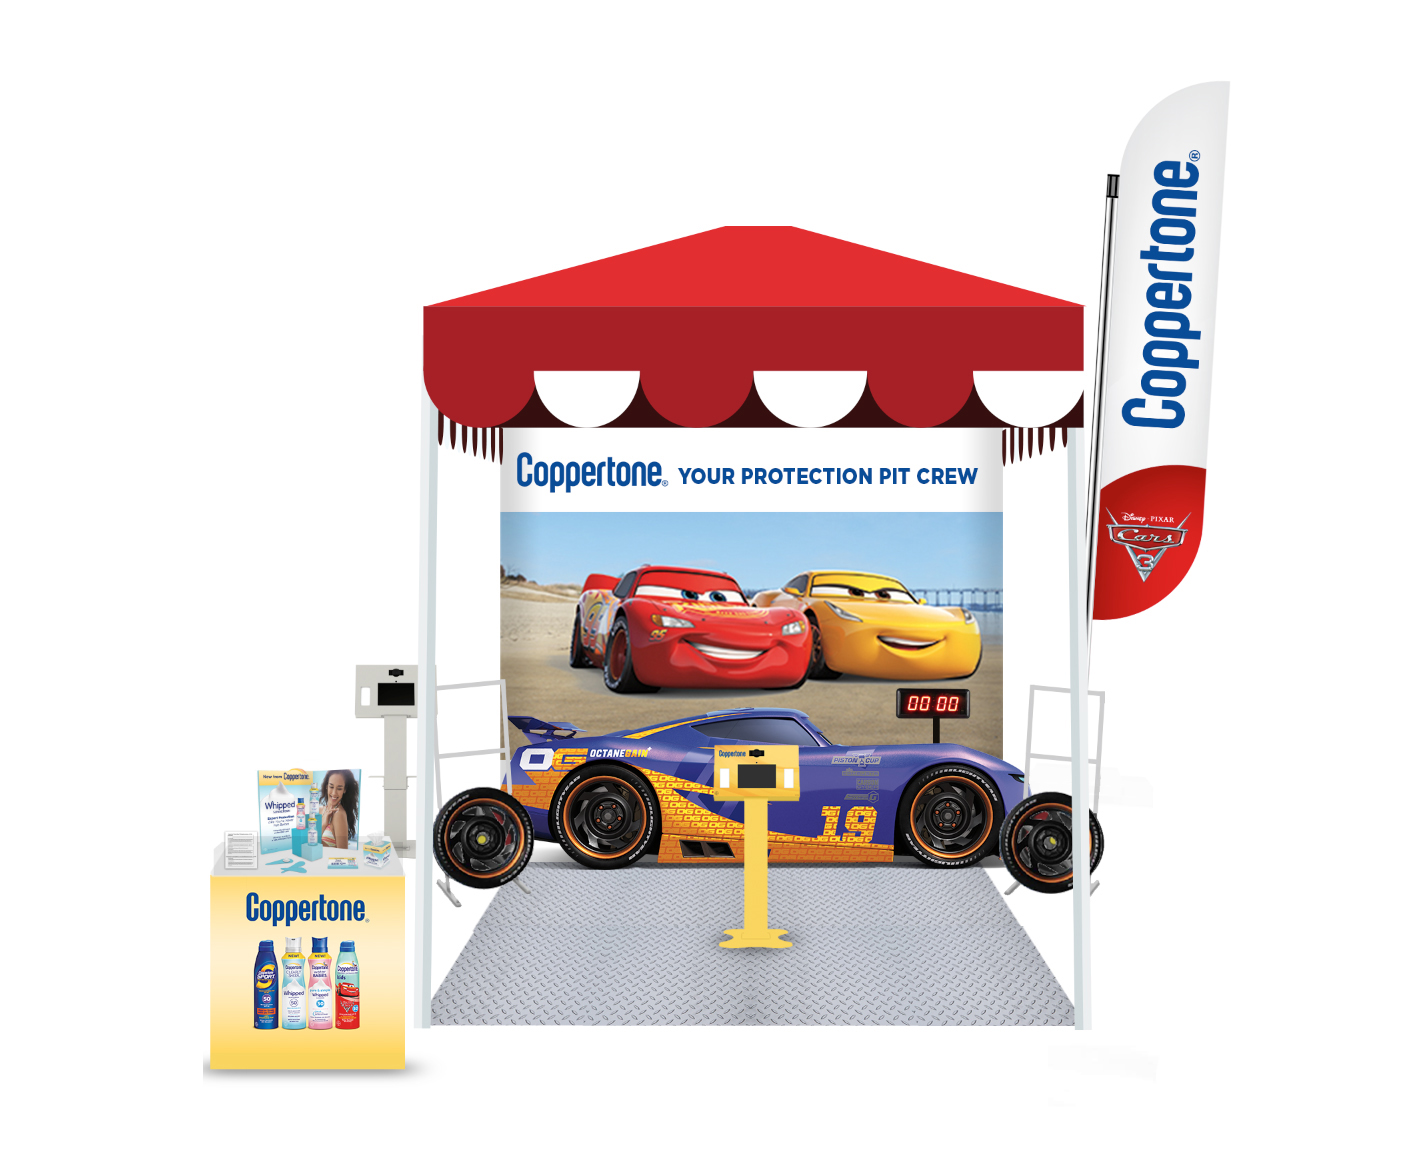 Coppertone® is gearing up for the big Cars 3 premiere on June 16th with nationwide sunscreen sampling and encouraging visitors to take part in race-themed activities!